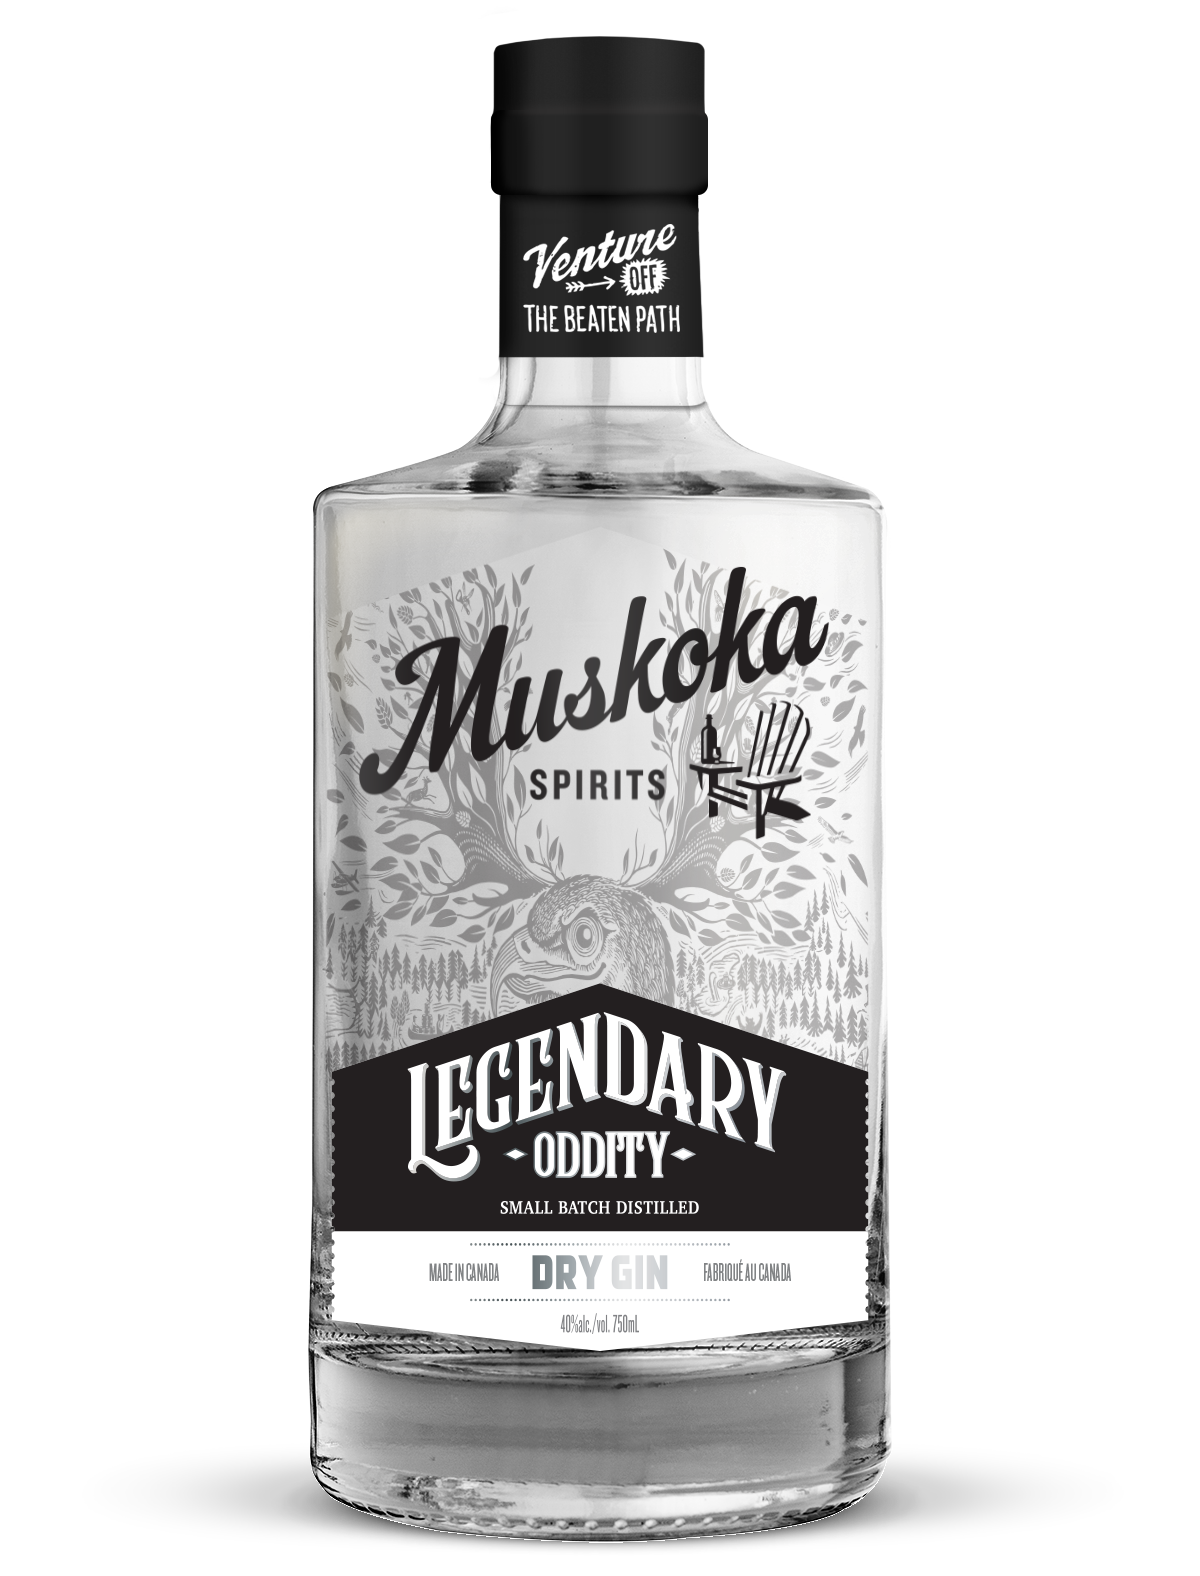 Legendary Oddity Gin